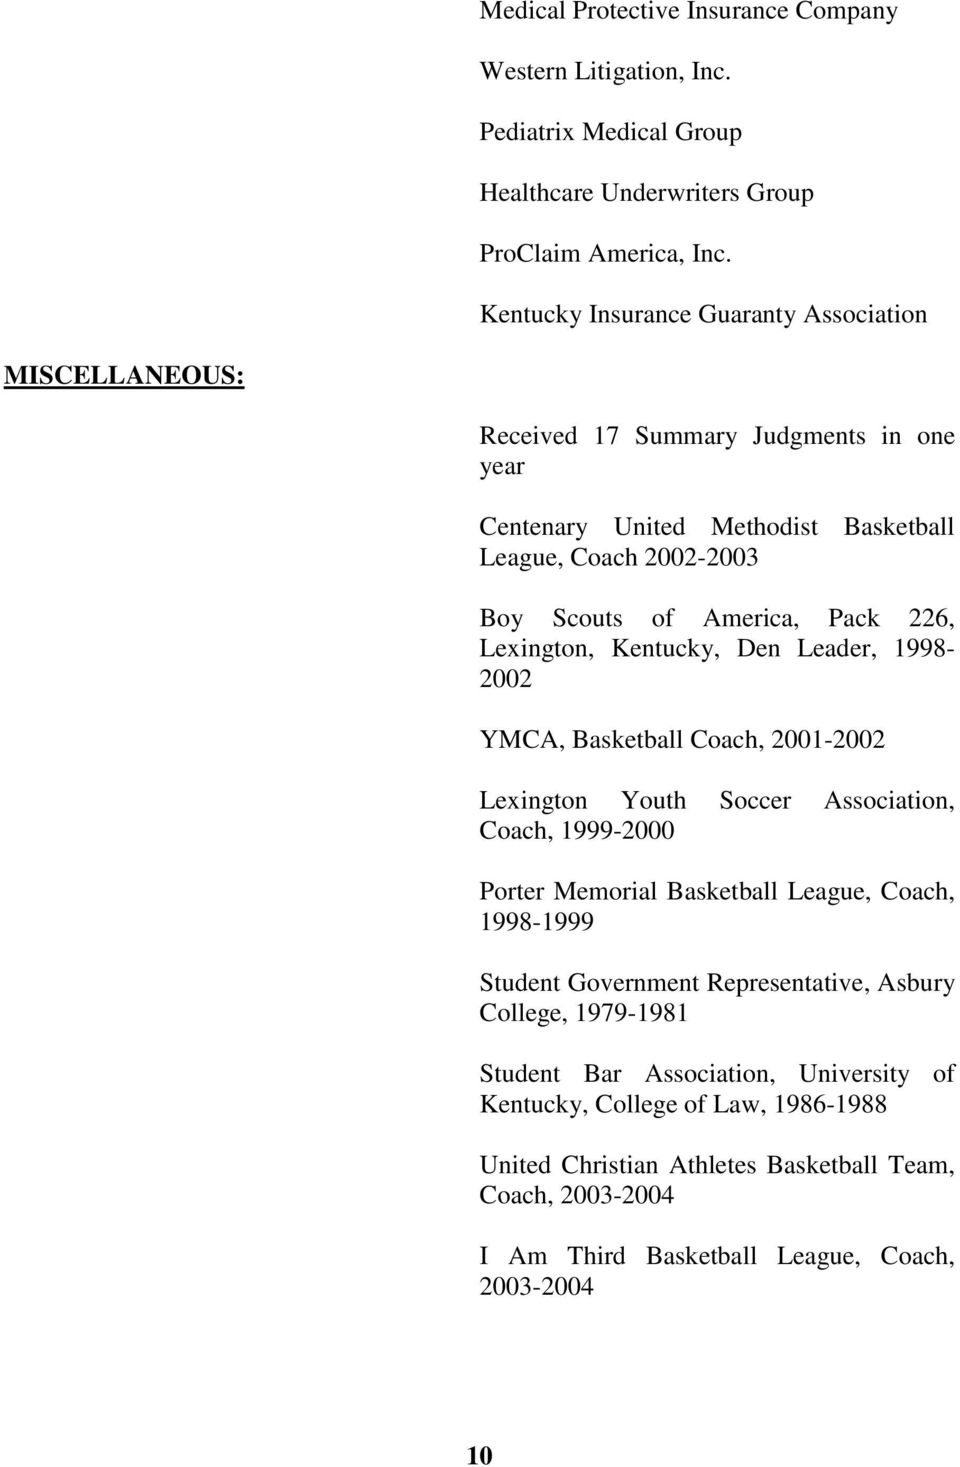 226, Lexington, Kentucky, Den Leader, 1998-2002 YMCA, Basketball Coach, 2001-2002 Lexington Youth Soccer Association, Coach, 1999-2000 Porter Memorial Basketball League, Coach, 1998-1999